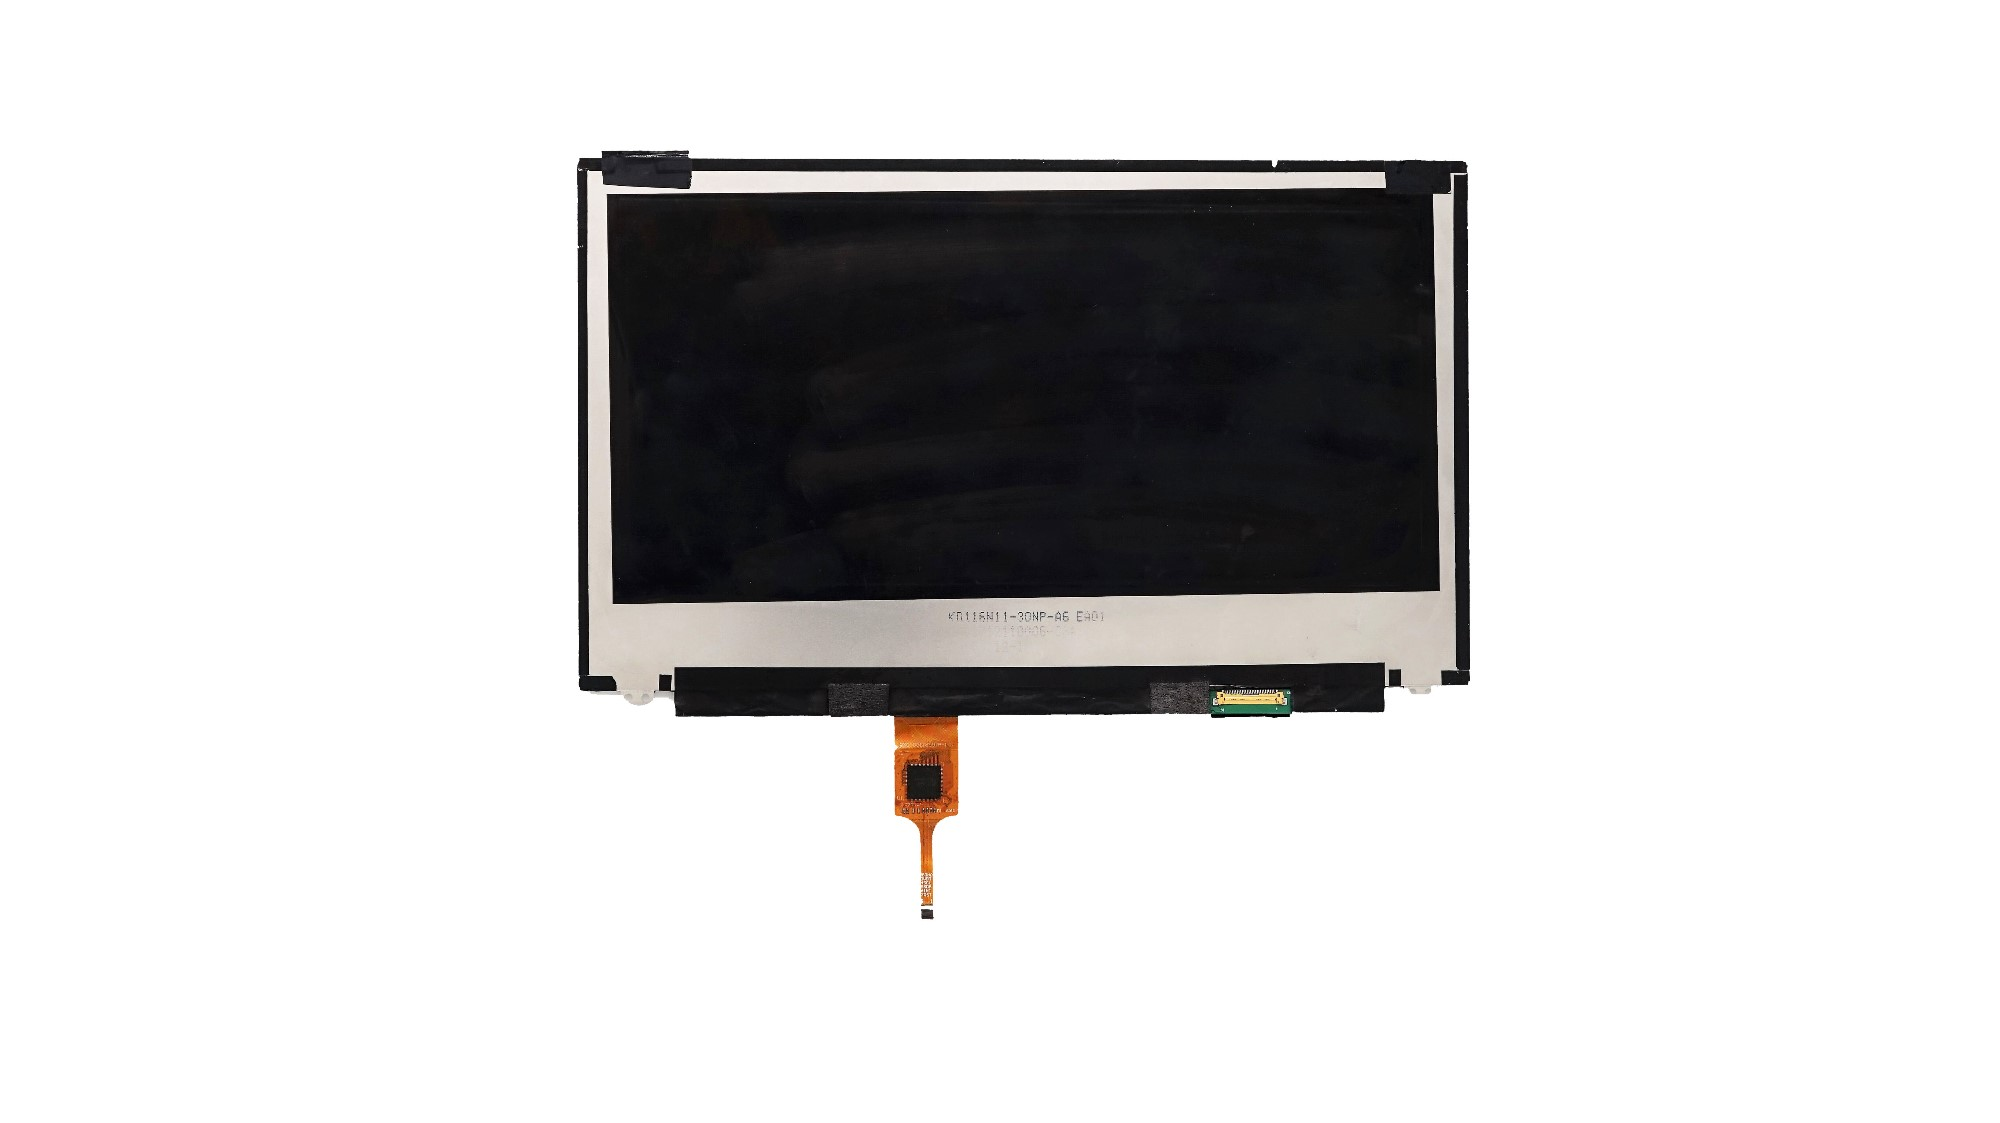 Custom China Touch Screen 11.6 Inch With Ips Display And High Brightness, Touch Screen 11.6 Inch With Ips Display And High Brightness Factory, Touch Screen 11.6 Inch With Ips Display And High Brightness OEM